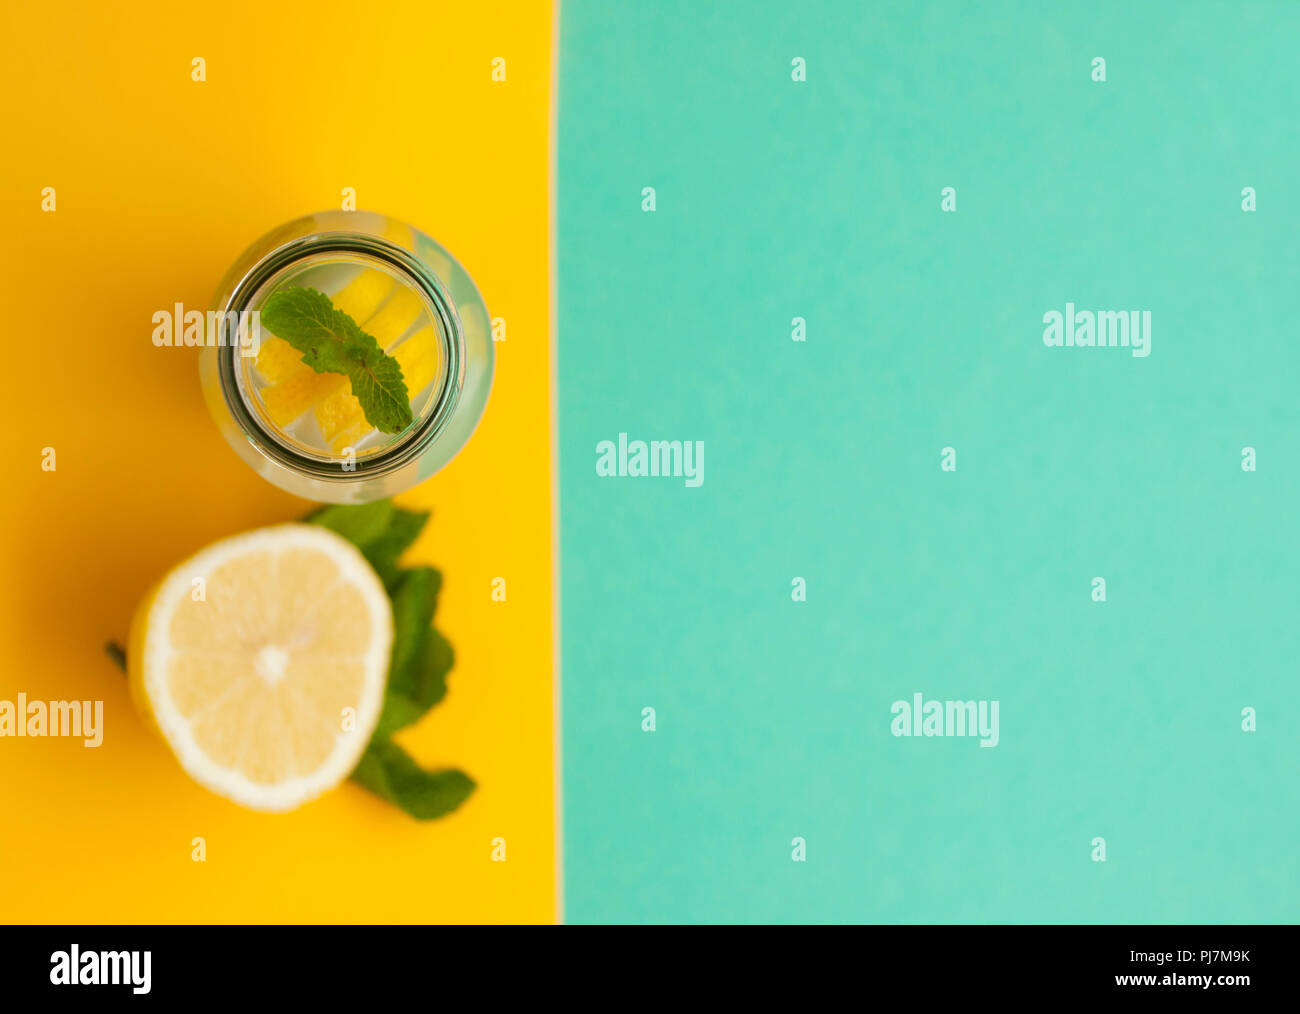 Flat lay of lemonade ingredients with copyspace. - Stock Image